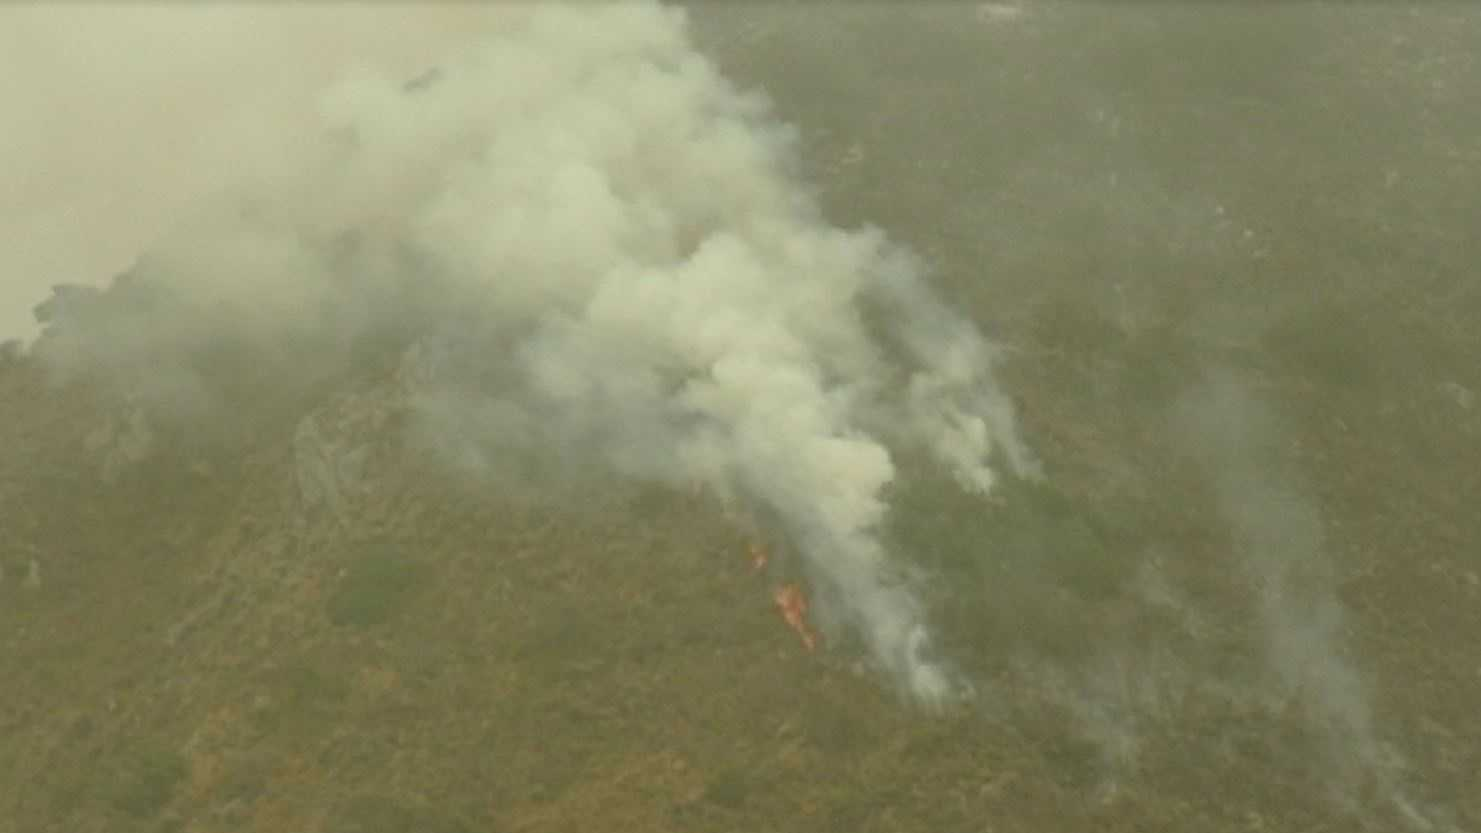 Sobranes Fire in Monterey County